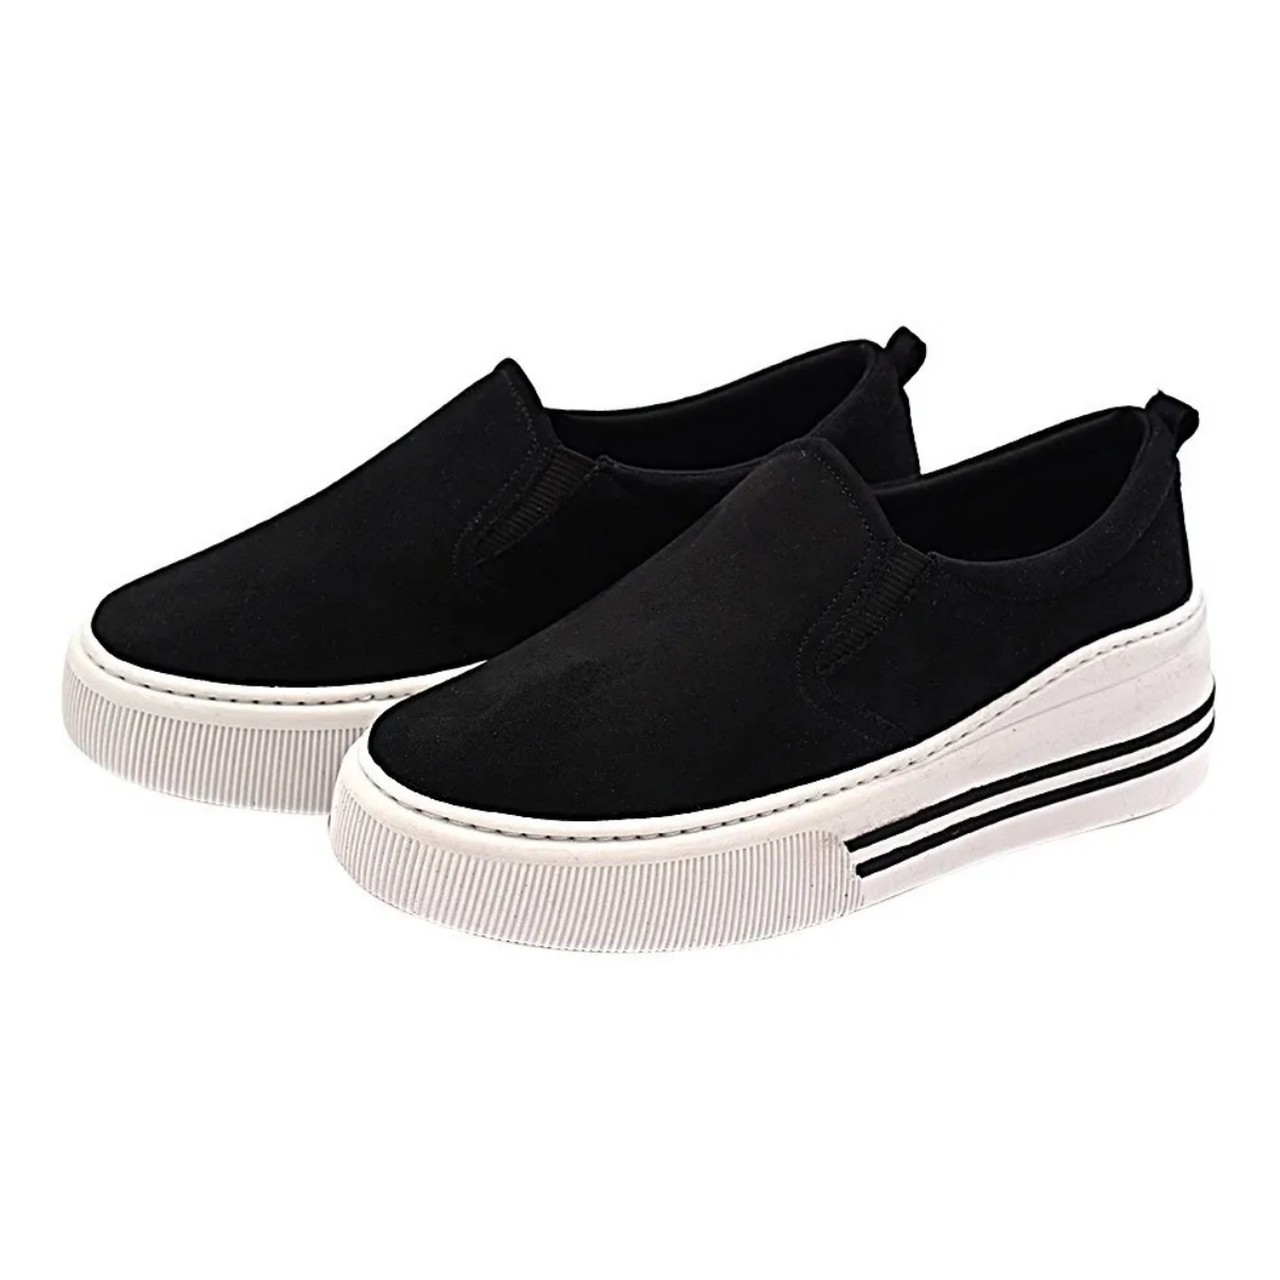 Slip On Gommix Shoes 112 Sola Alta Suede Preto